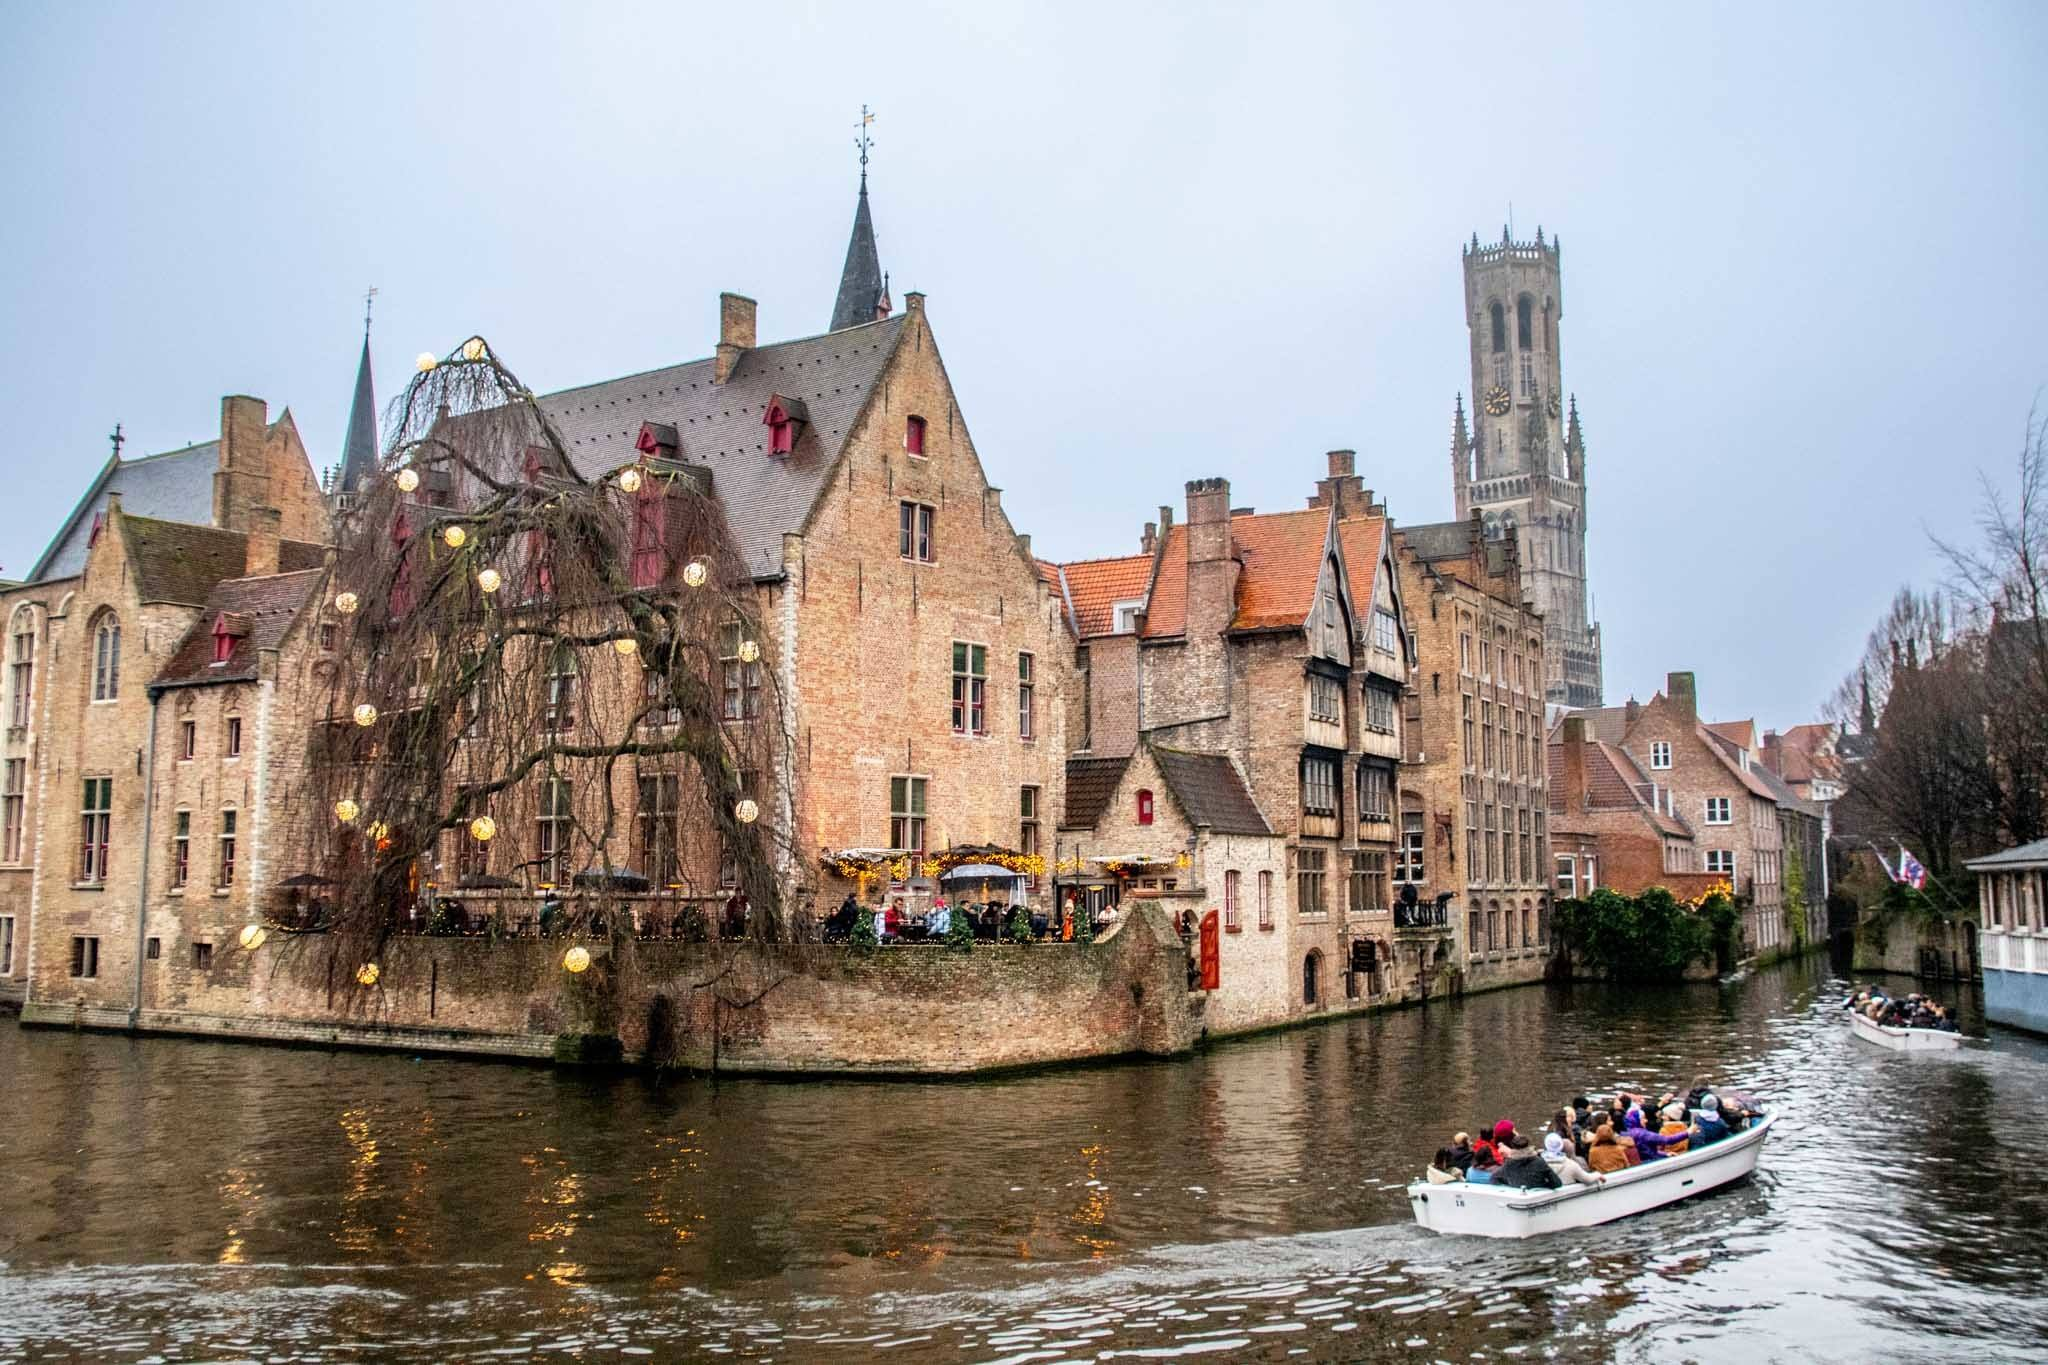 Two boats full of passengers in a canal in Bruges, Belgium